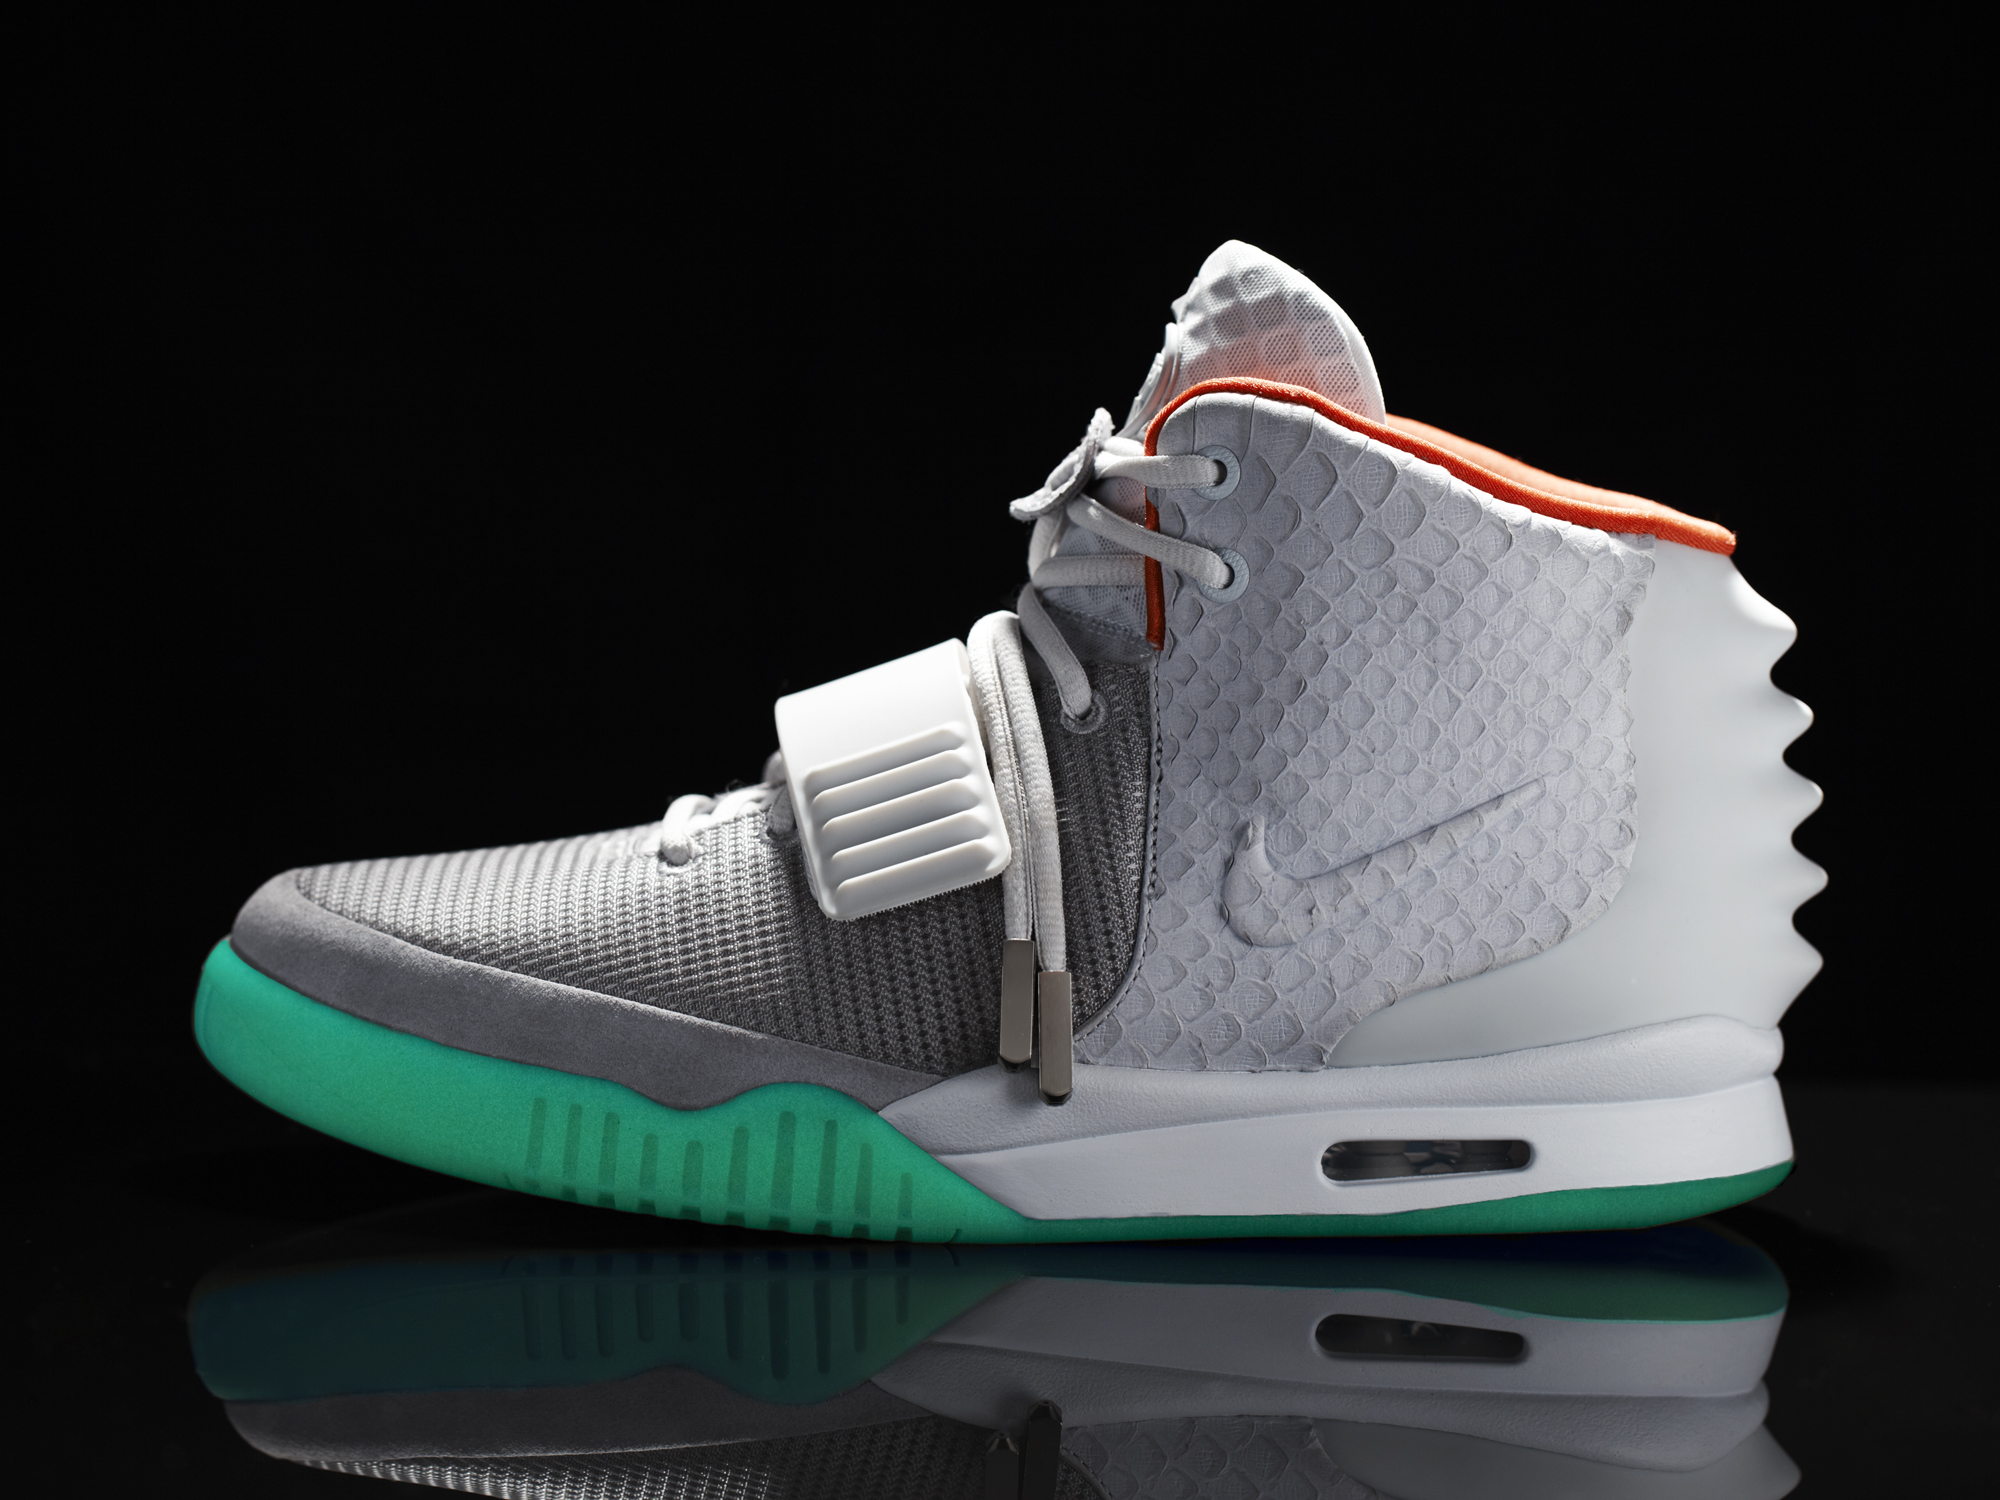 Kanye West to release first shoe with